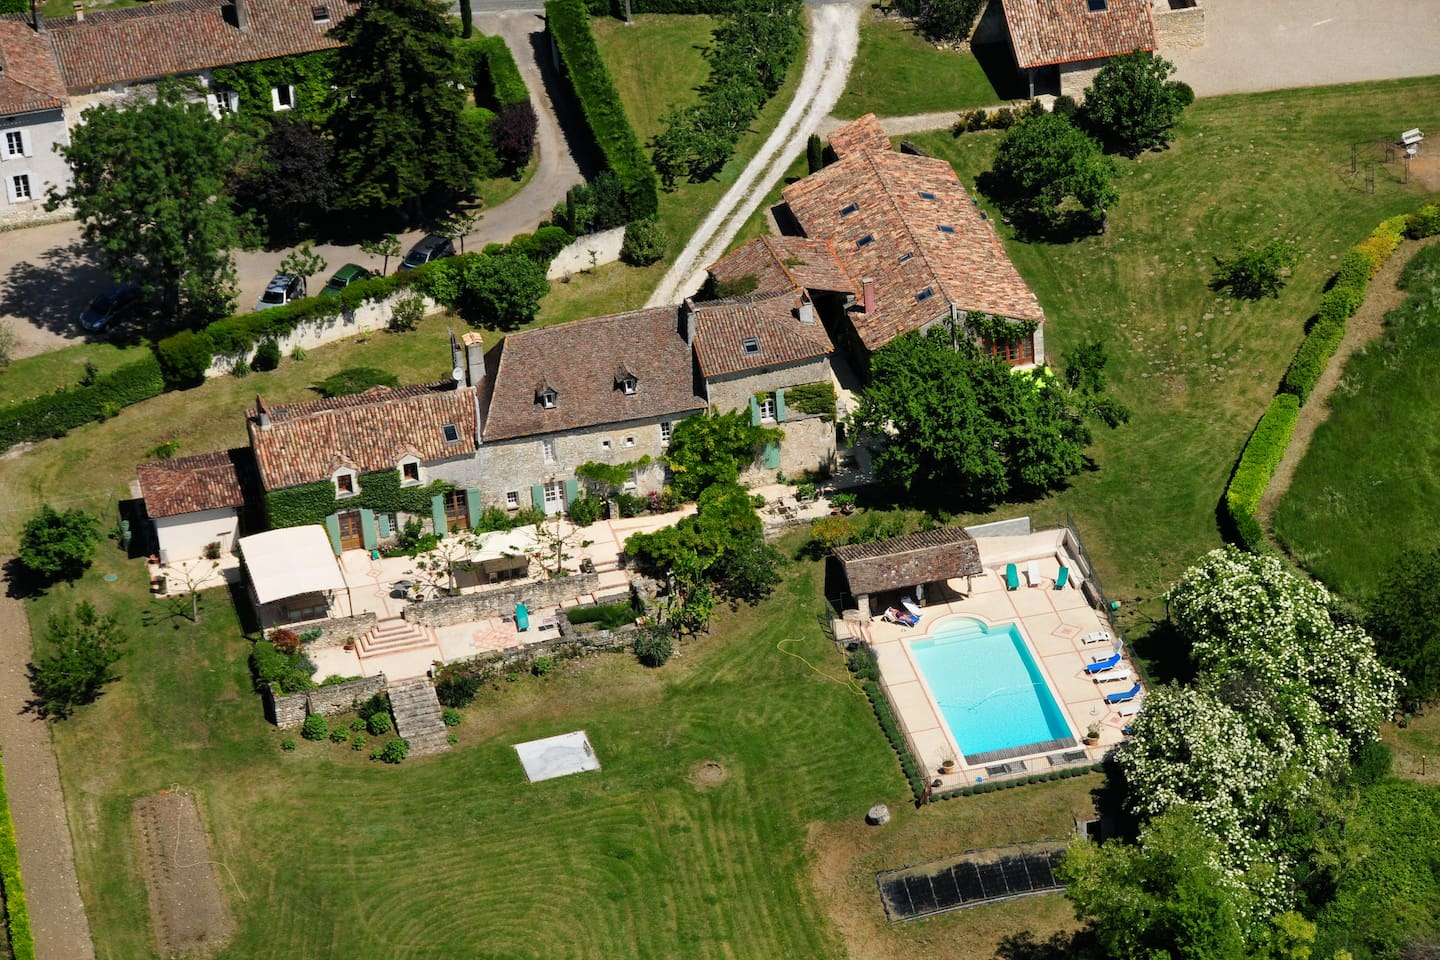 arial view of Bastide with pool